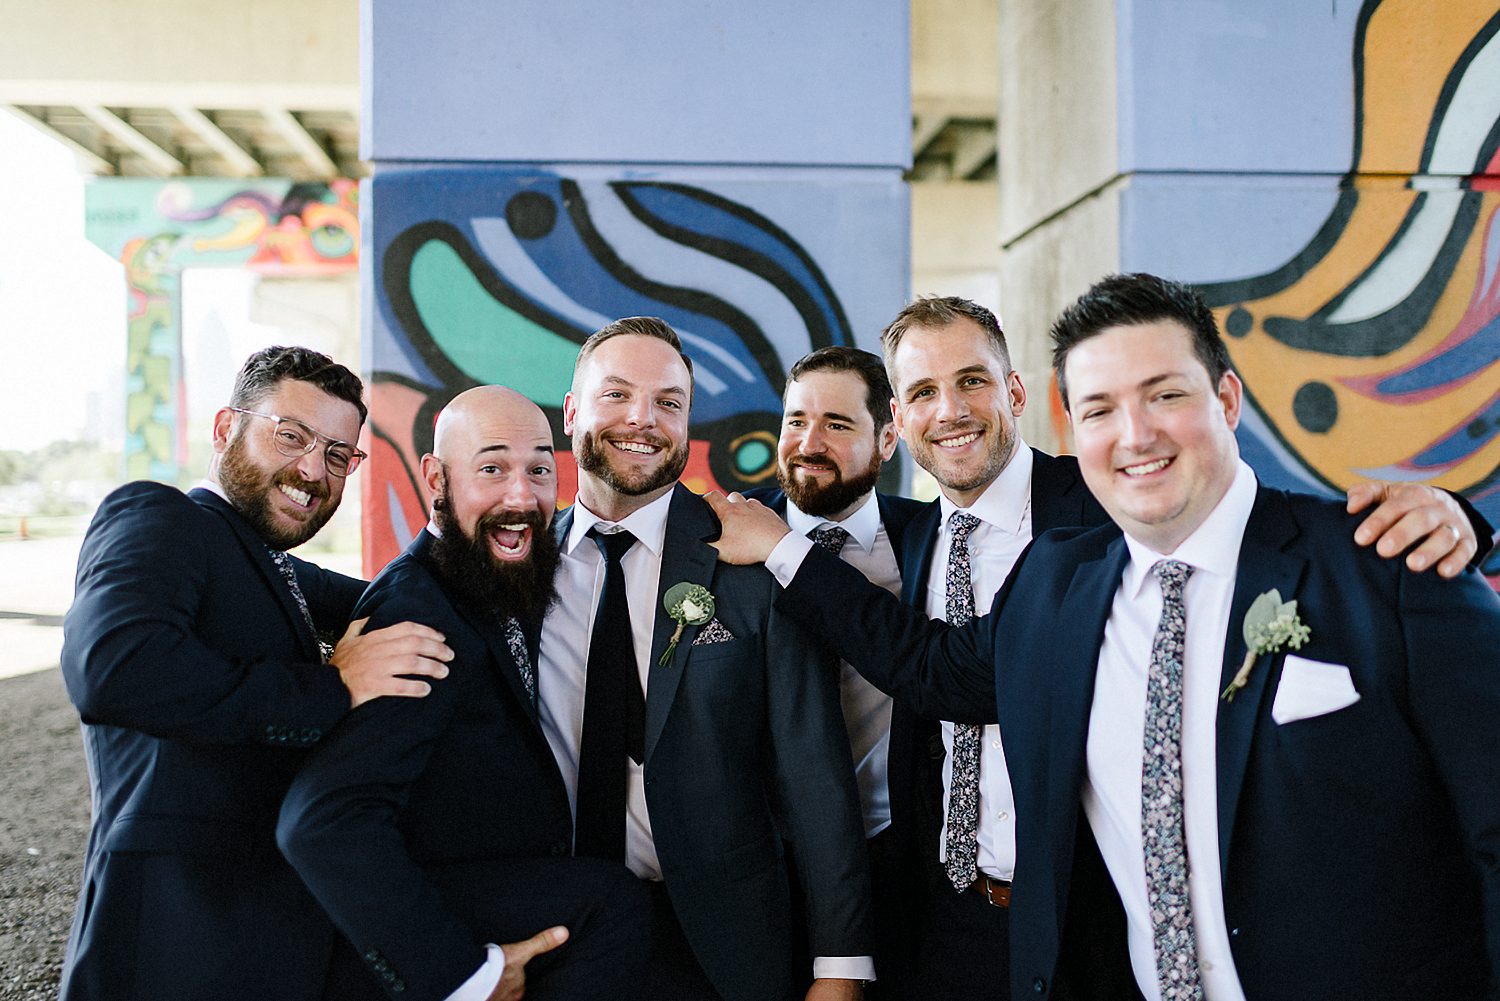 Best-Wedding-Photographers-Toronto-3B-photography-Photojournalistic-documentary-wedding-photography-alternative-cinematic-mood-Bridal-Party-under-the-underpass-candid-portraits-with-groomsmen.jpg